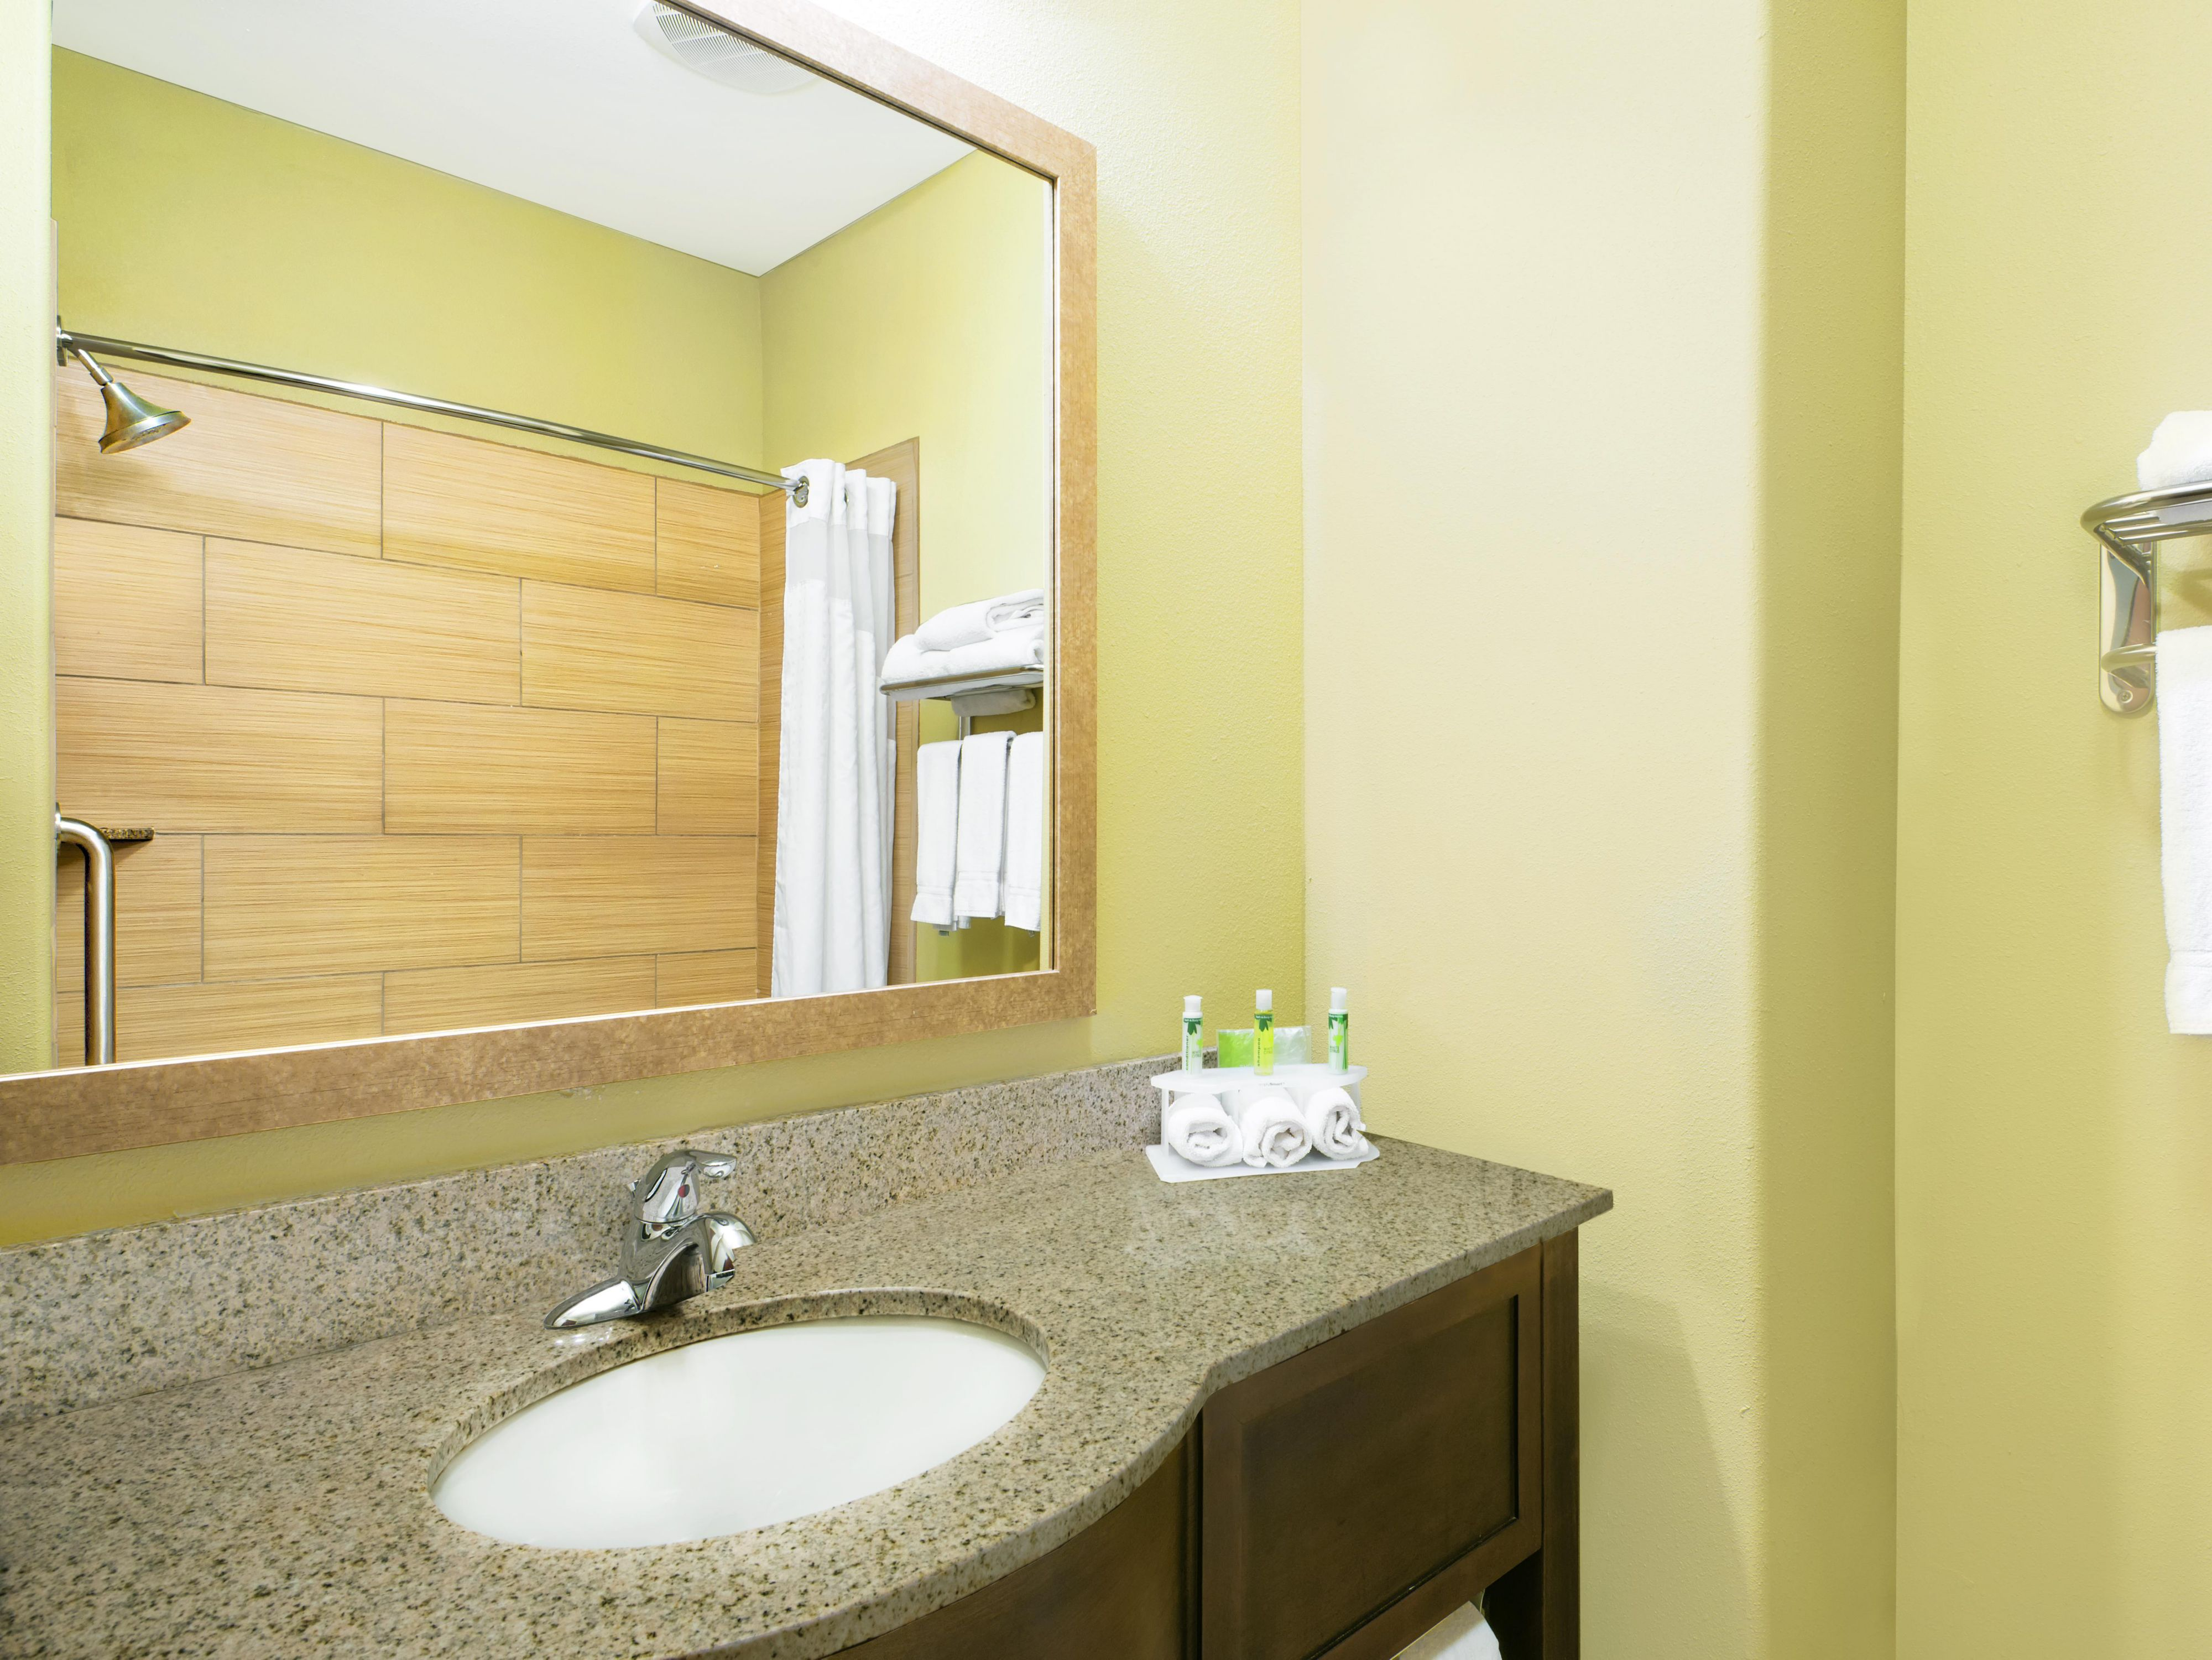 Monahans, TX Holiday Inn Express & Suites Guest Bathroom